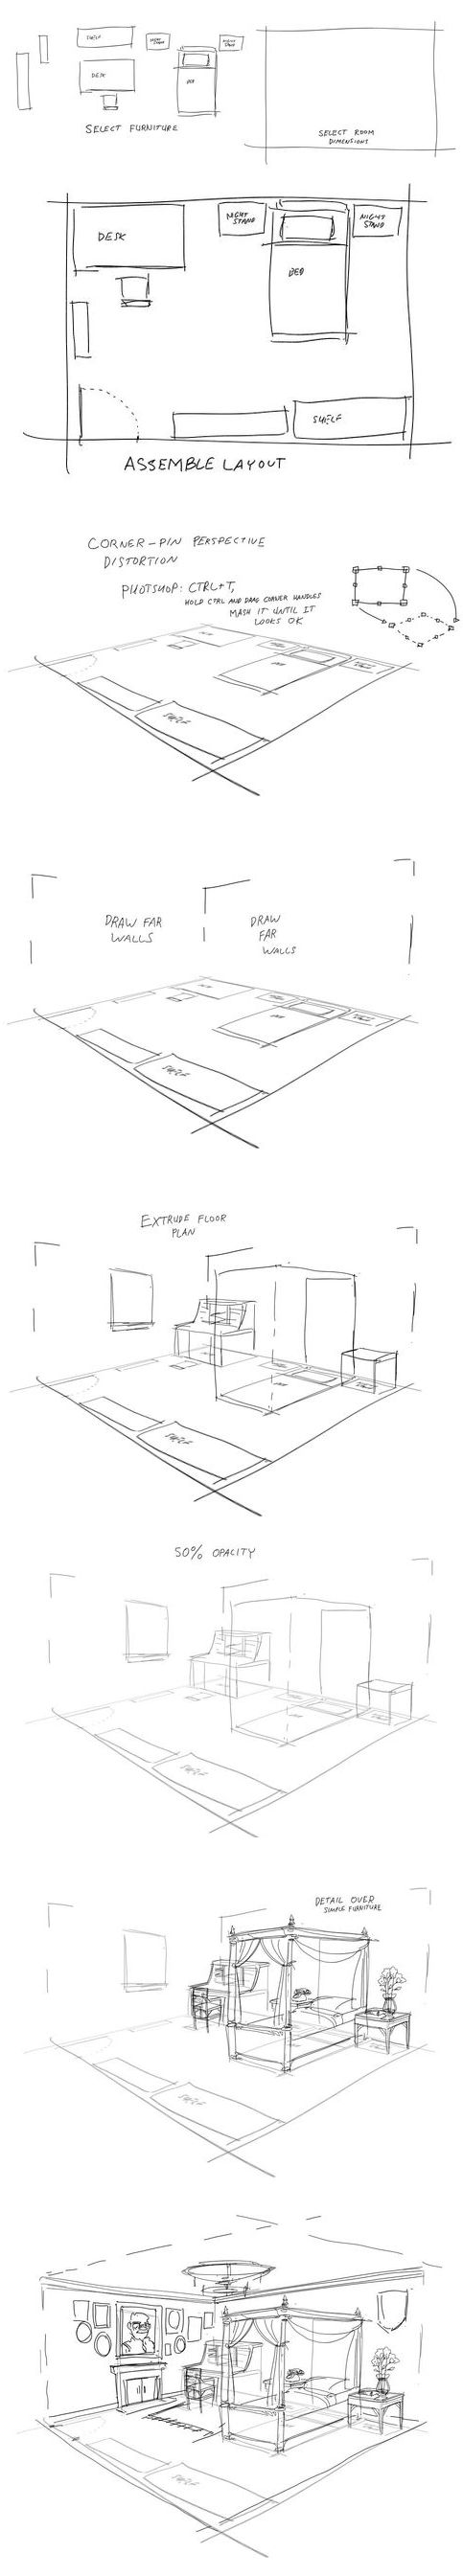 Dining room perspective drawing  best images about arquitetura on pinterest  mesas table and